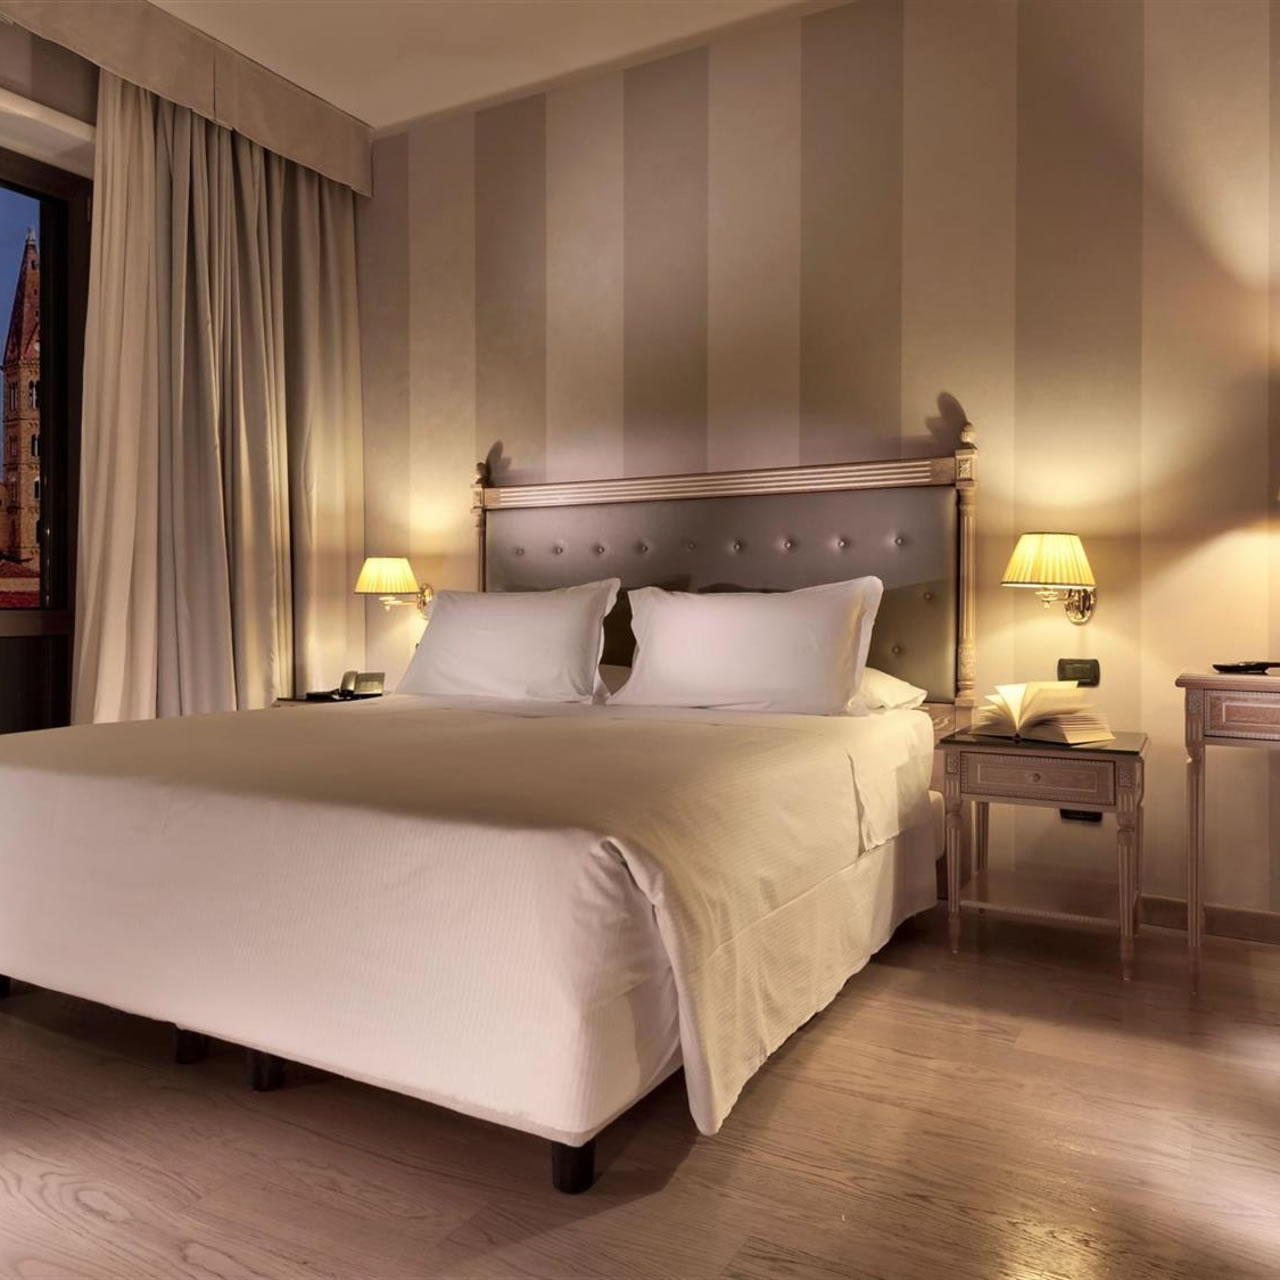 C-hotels-Florence